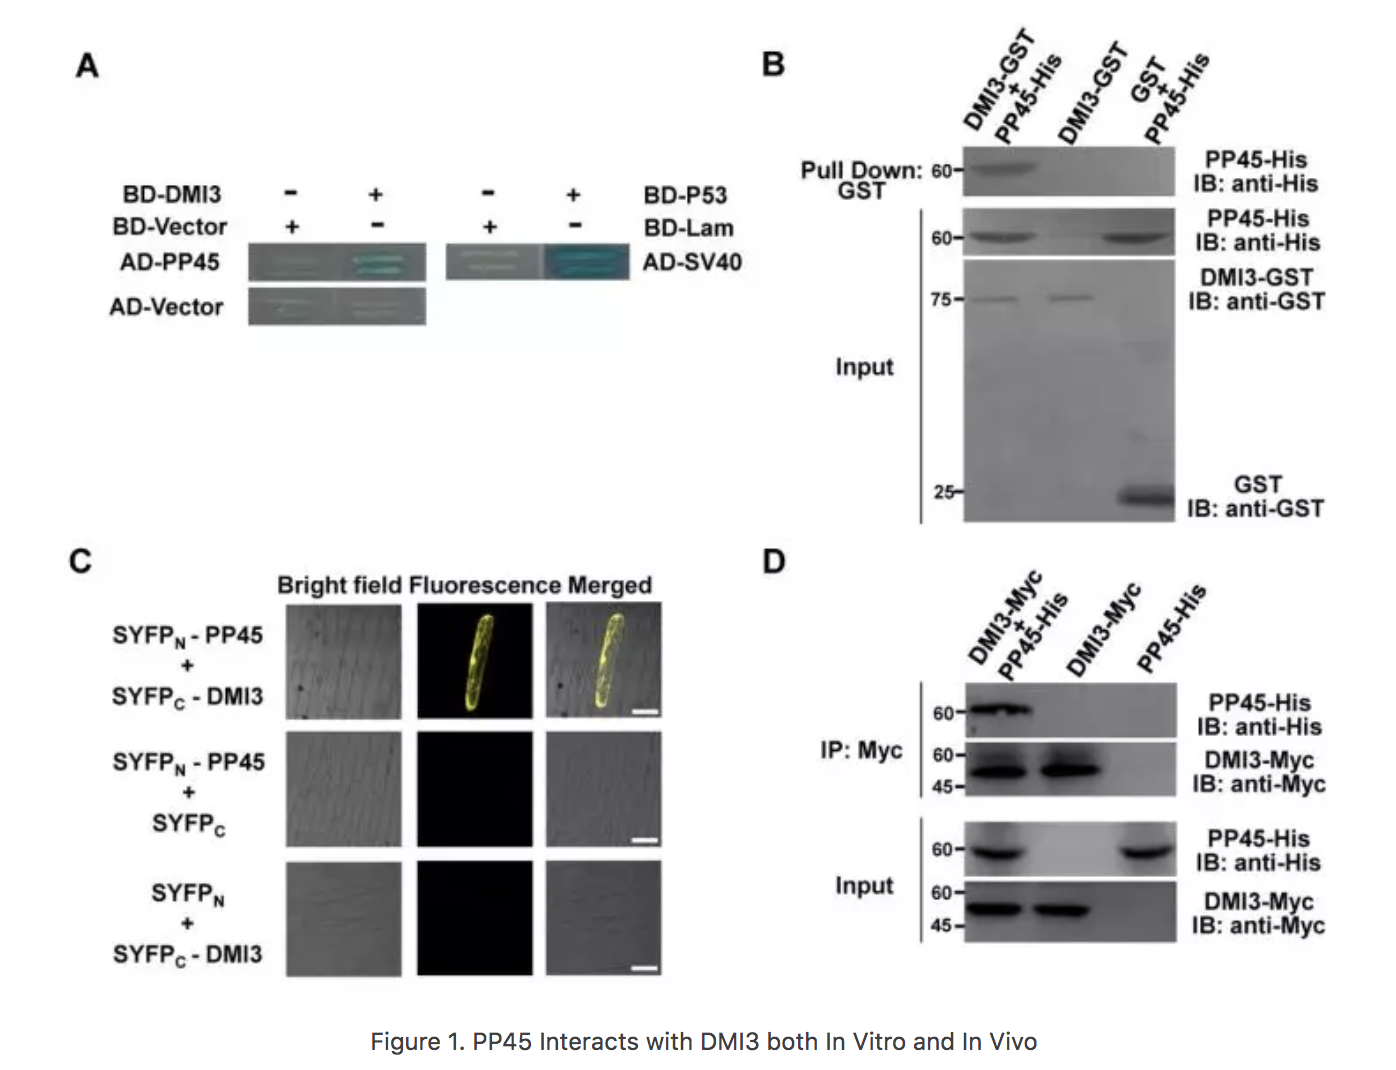 Figure 1. PP45 Interacts with DMI3 both In Vitro and In Vivo